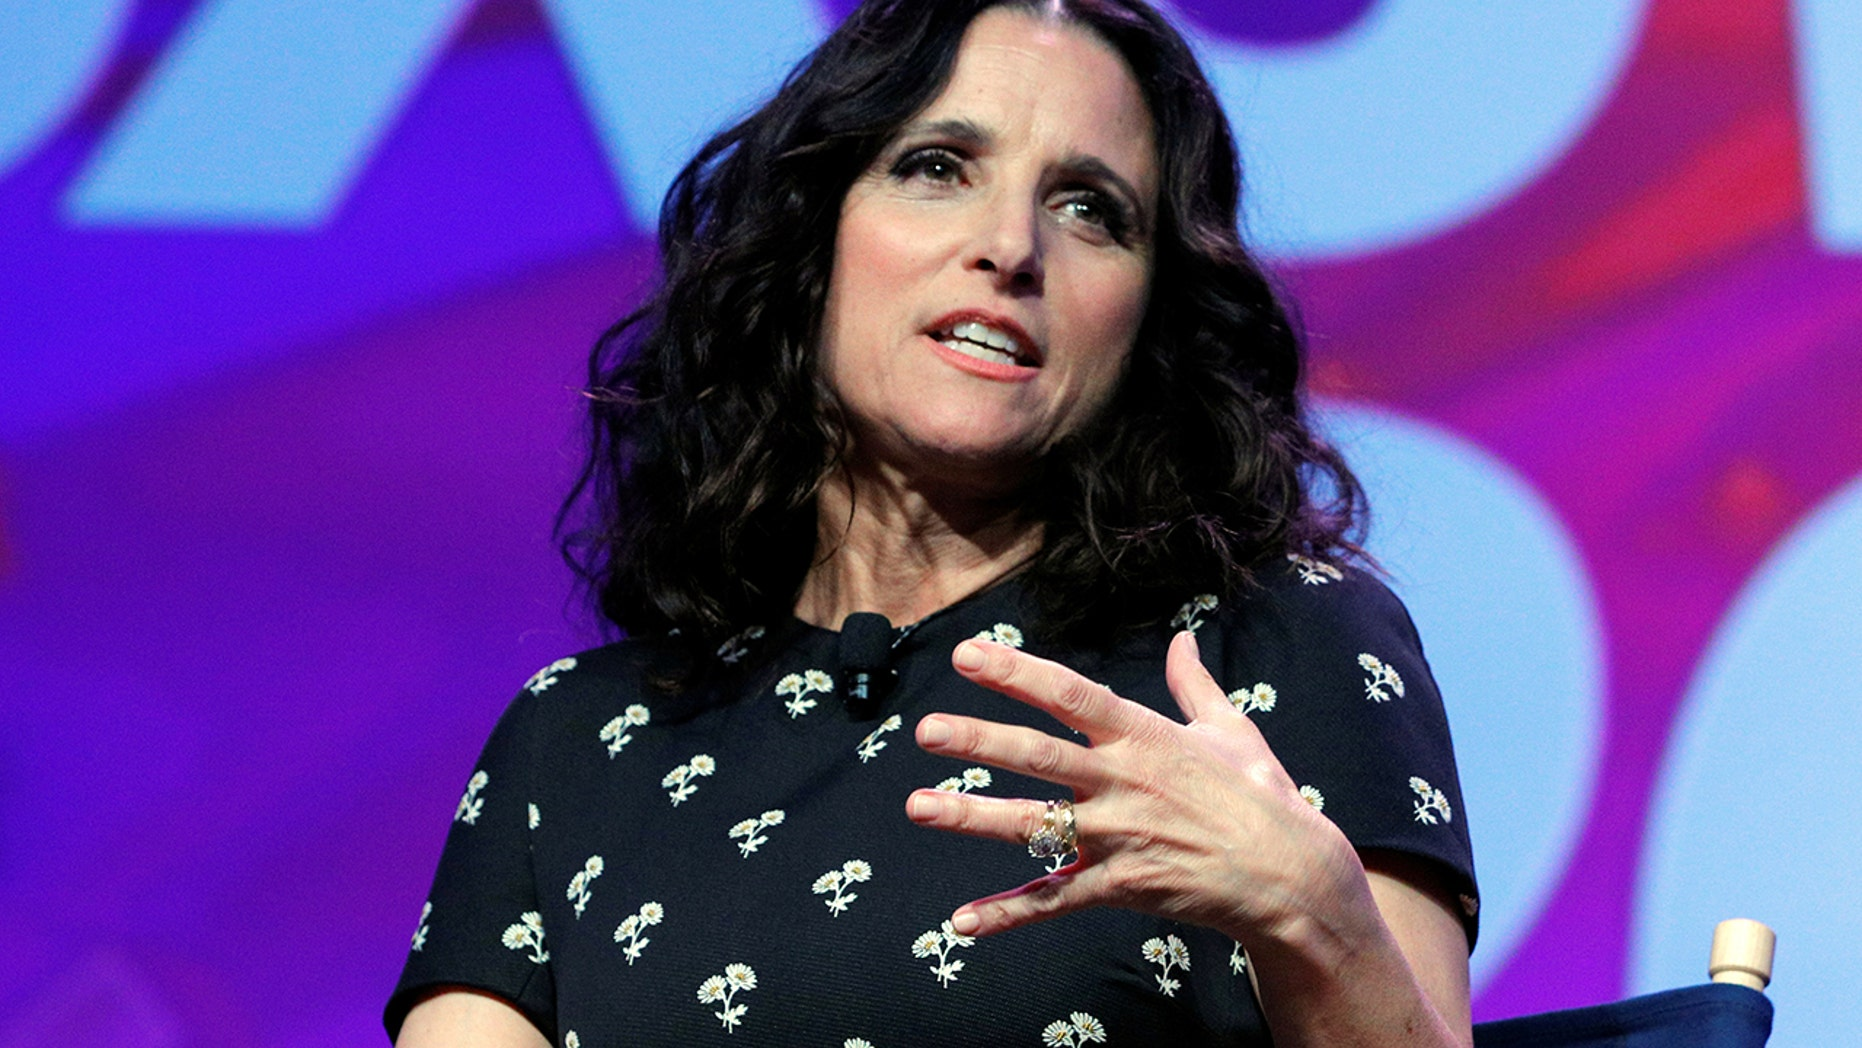 The selfless reason Julia Louis-Dreyfus shared her battle with breast cancer